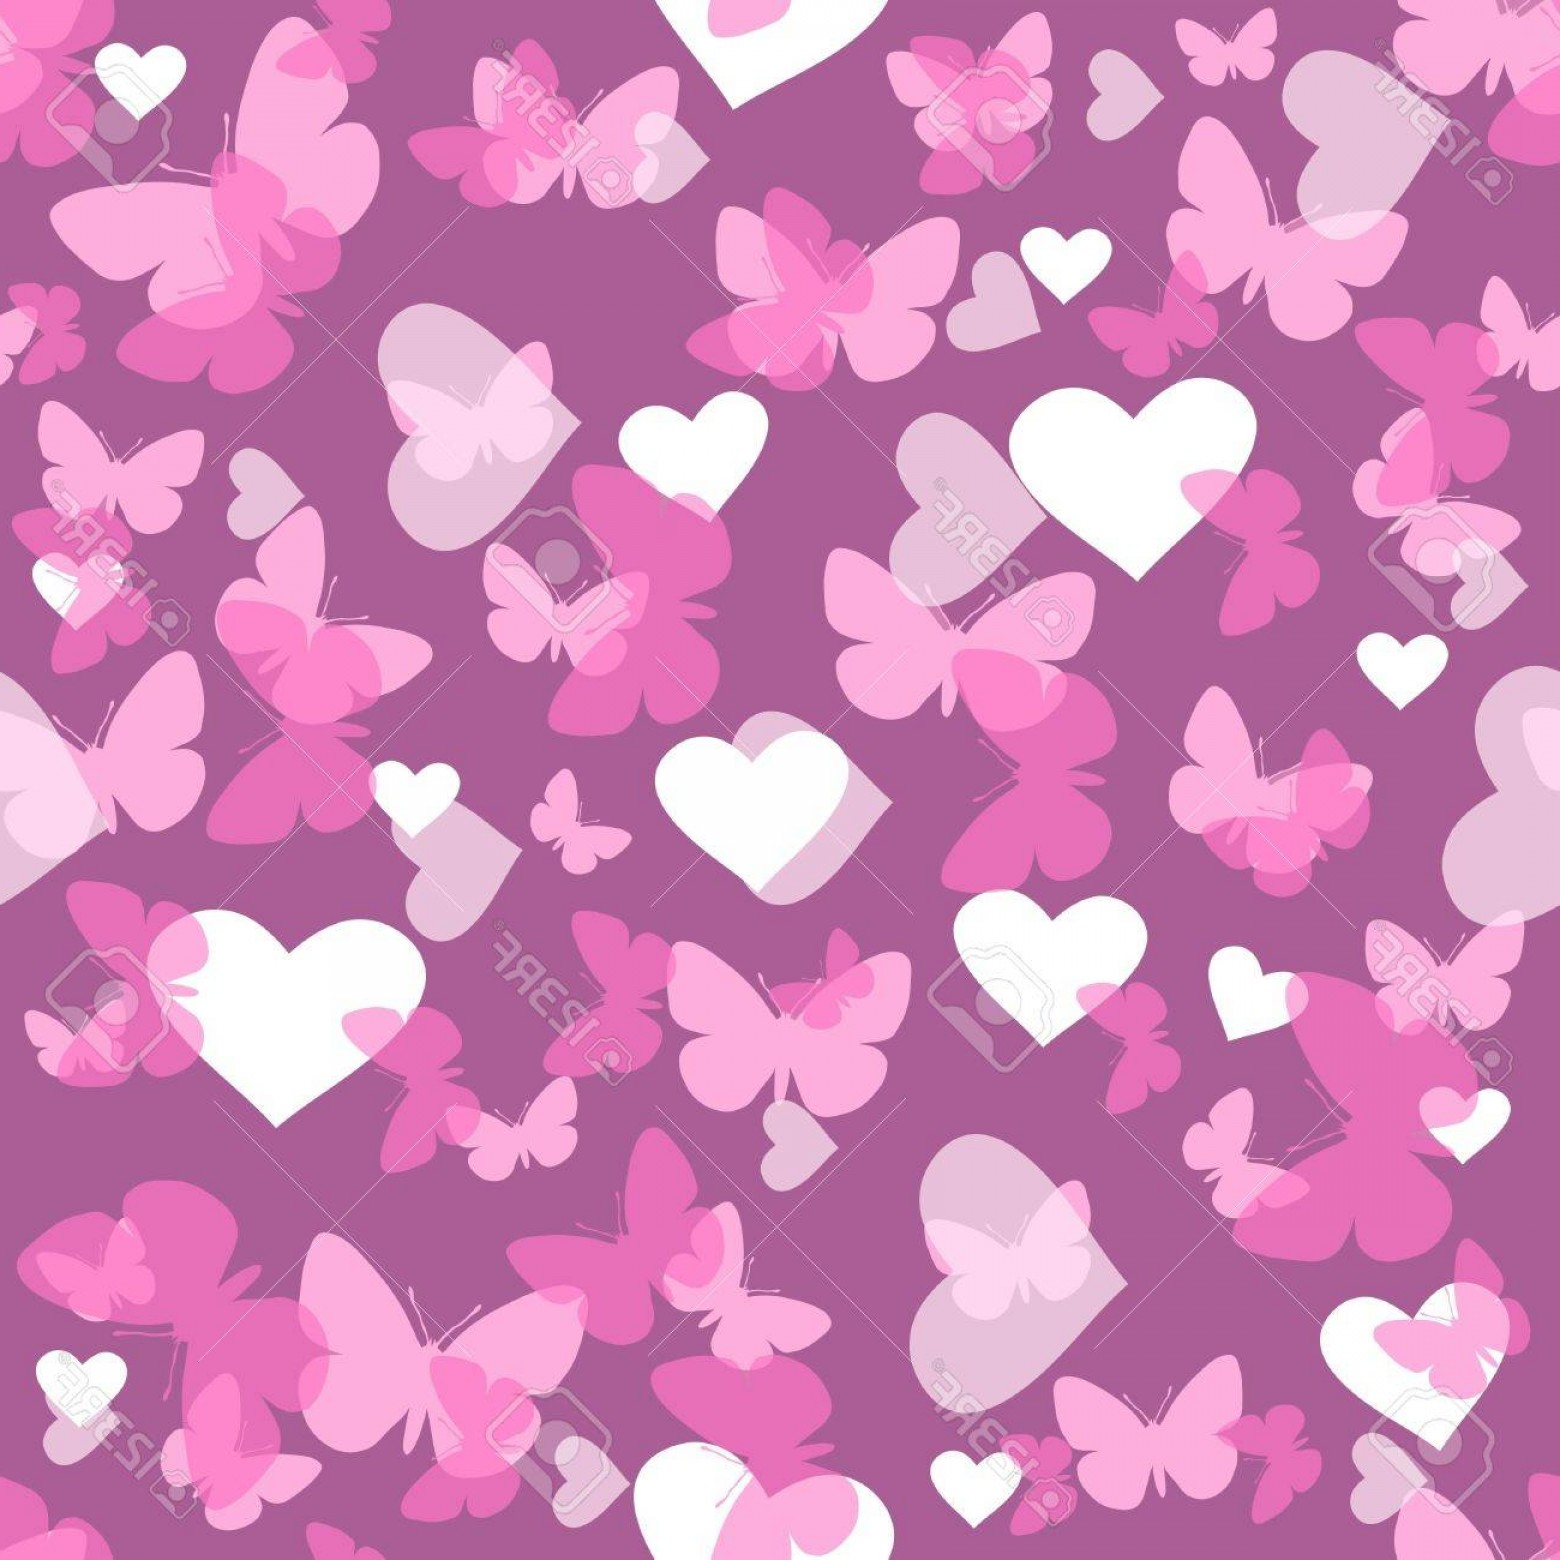 Purple Butterfly Wallpaper Vector: Photoseamless Vector Wallpaper Valentines With Hearts And Butterfly